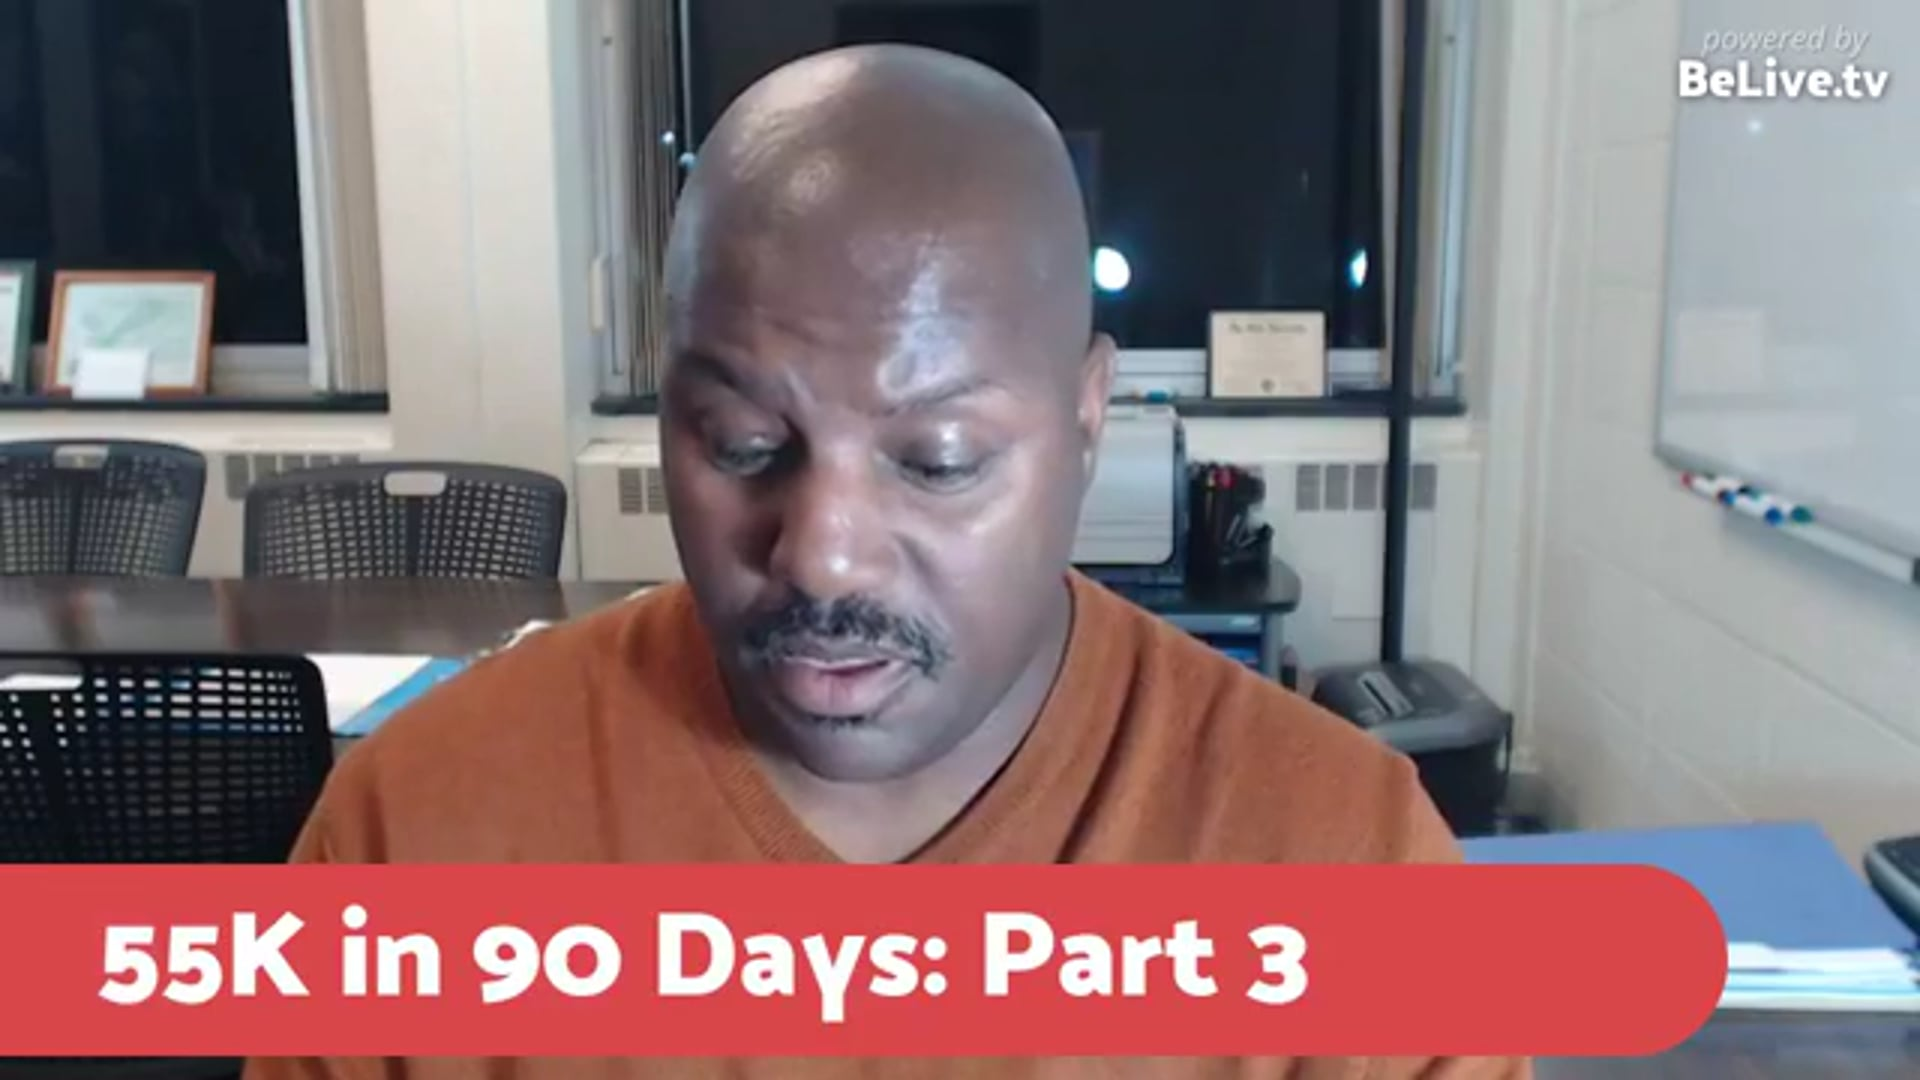 How to Generate 55K in 90 Days. Part 3- Target Your Focus